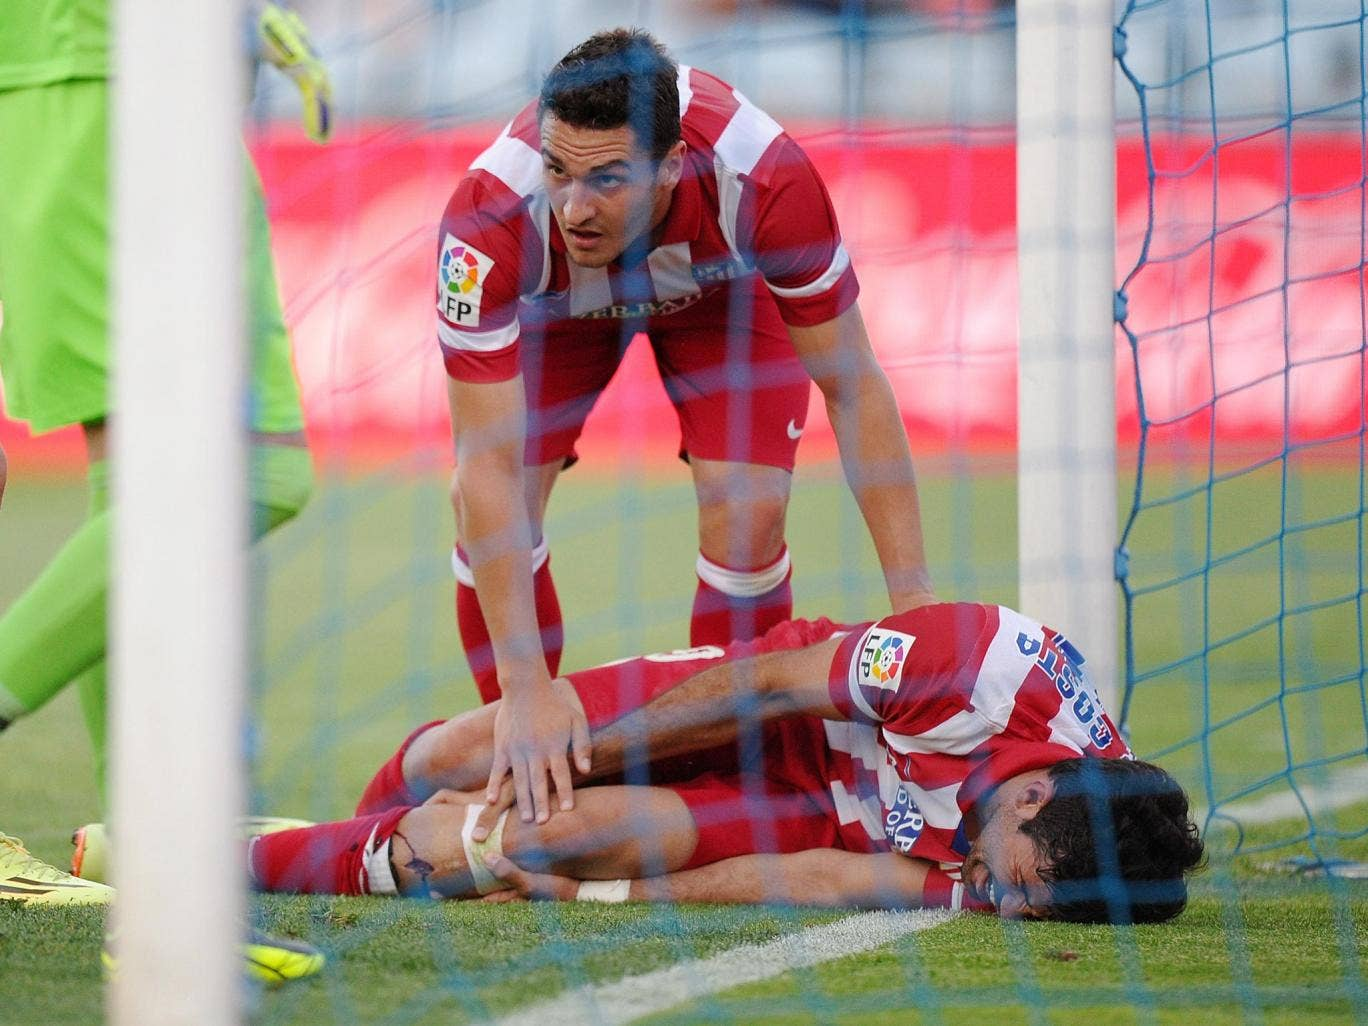 Diego Costa lies in pain after hitting the post when scoring in Atletico Madrid's 2-0 win over Getafe